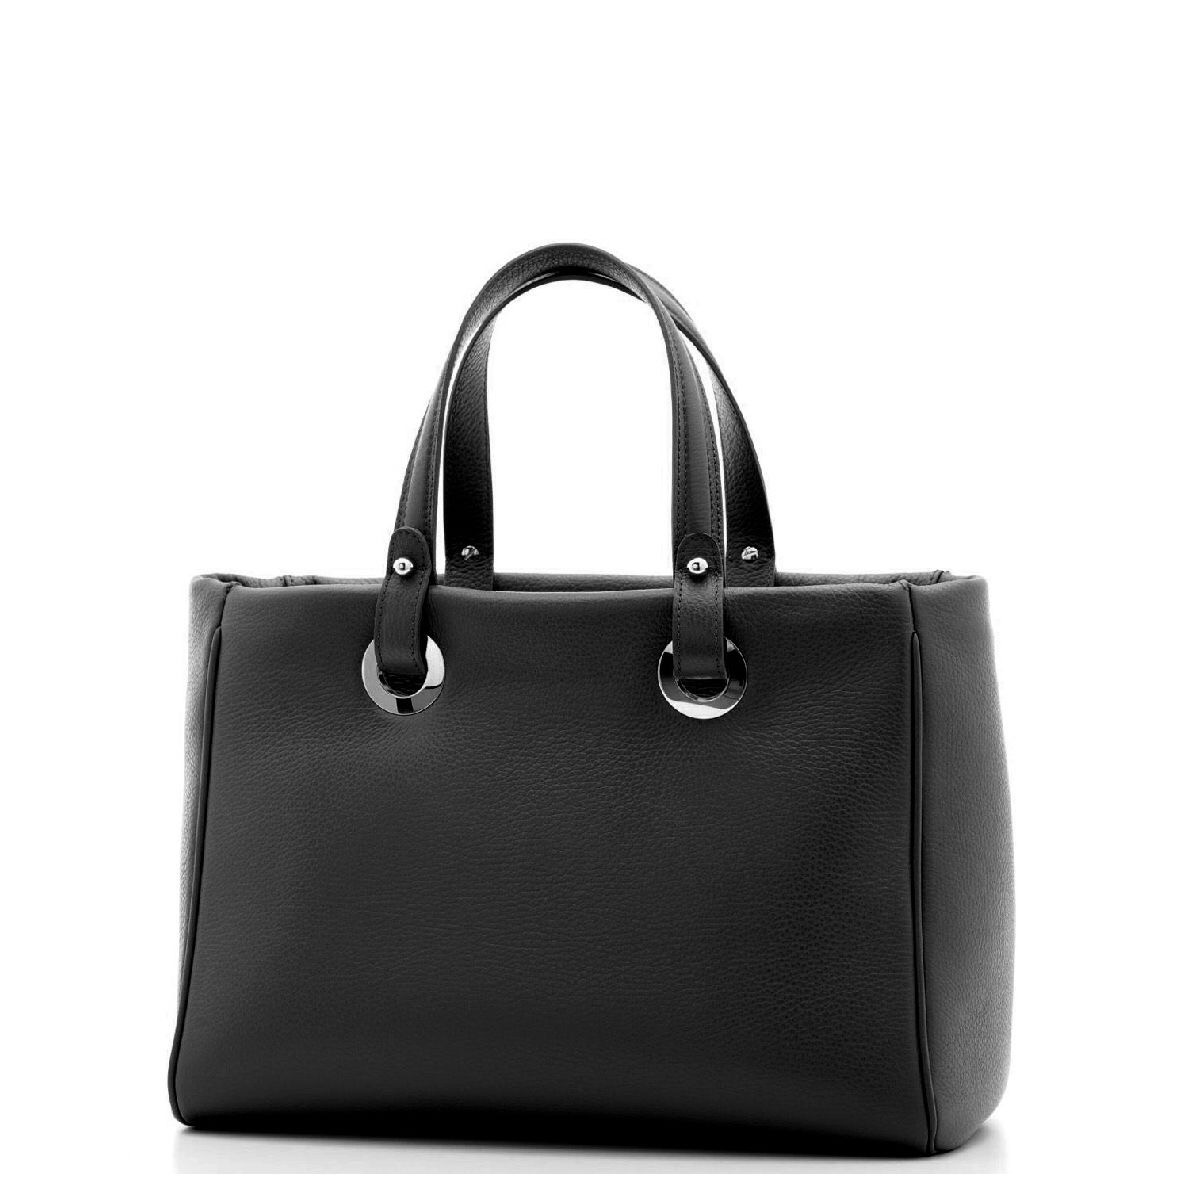 Madrid Handbag Tote Black Nkel